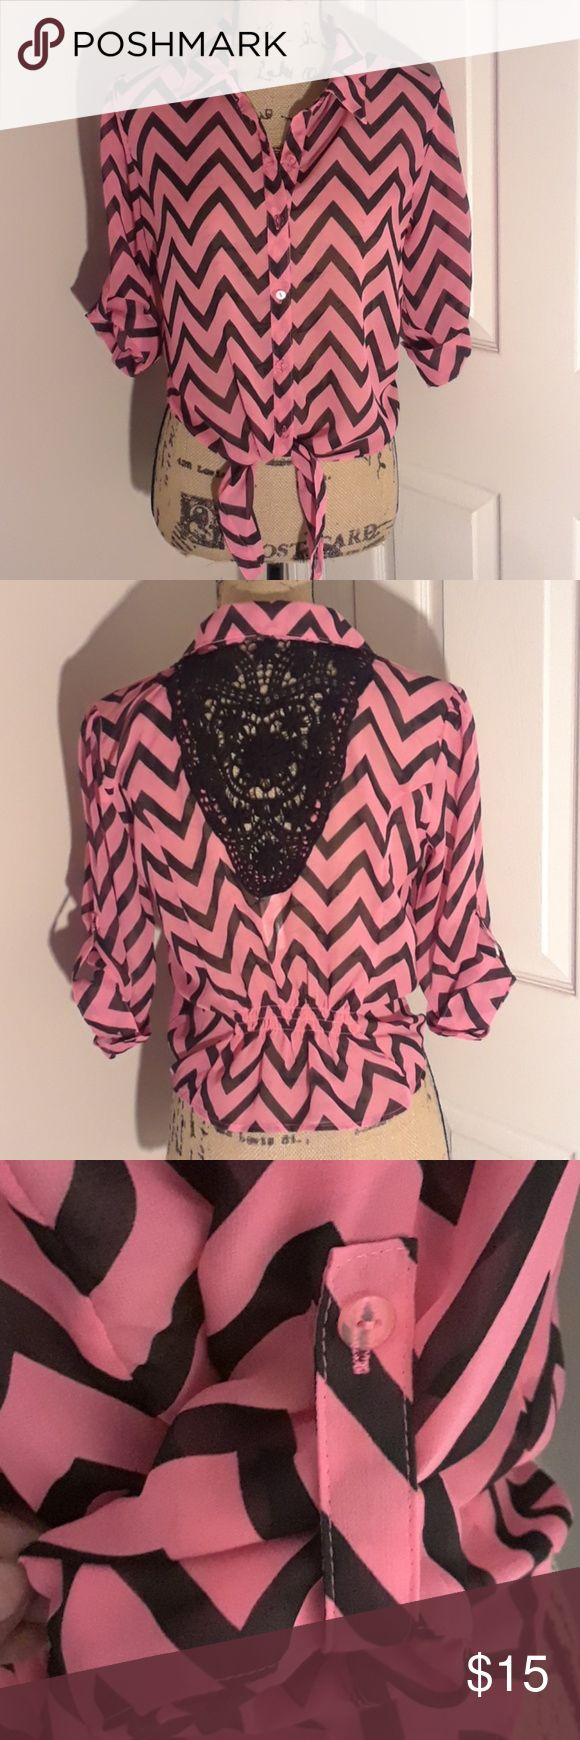 Coral Chevron Blouse Preowned, still in like new condition without any pulls or markings as shown in pictures No Boundaries Tops Blouses